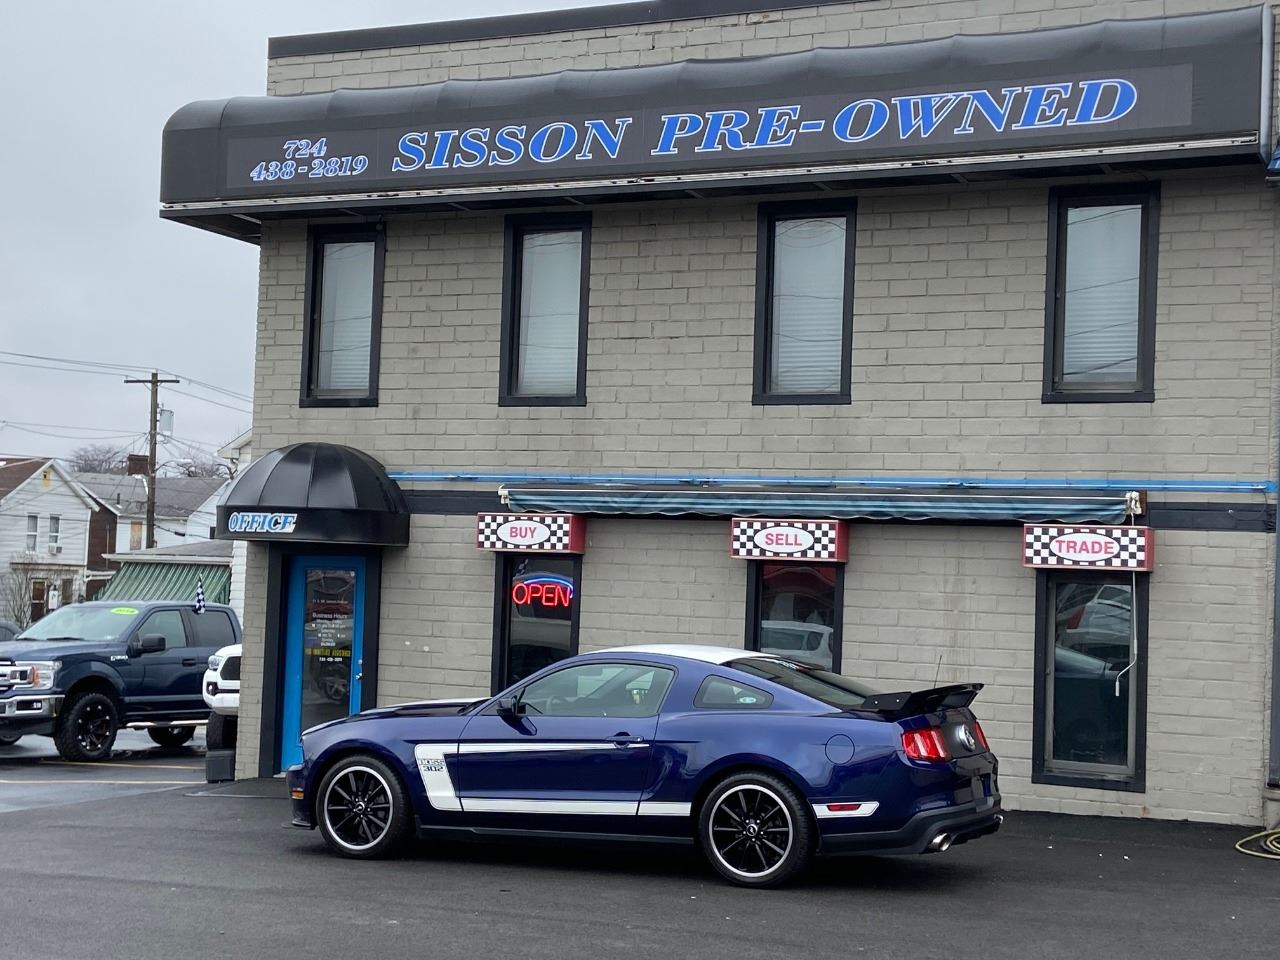 Sisson Pre-Owned